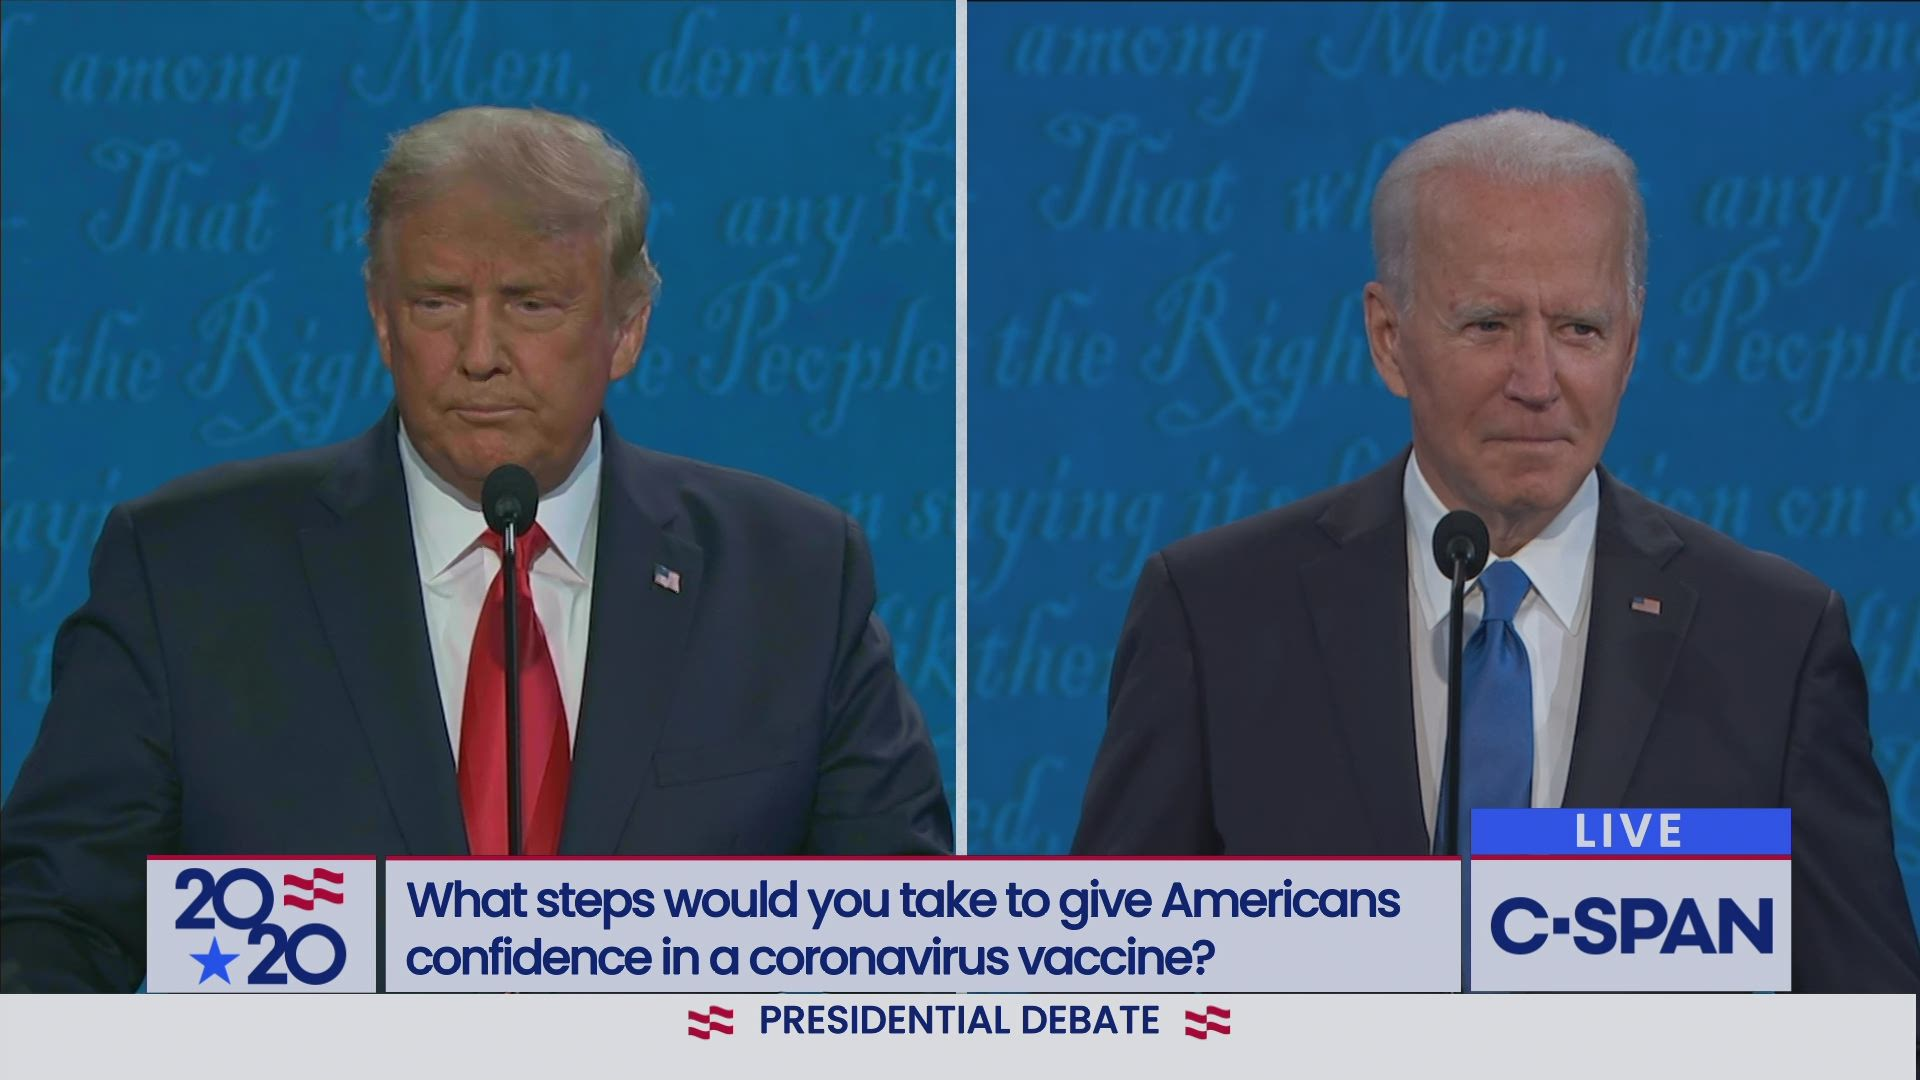 Trump Biden Second Debate C Span Org